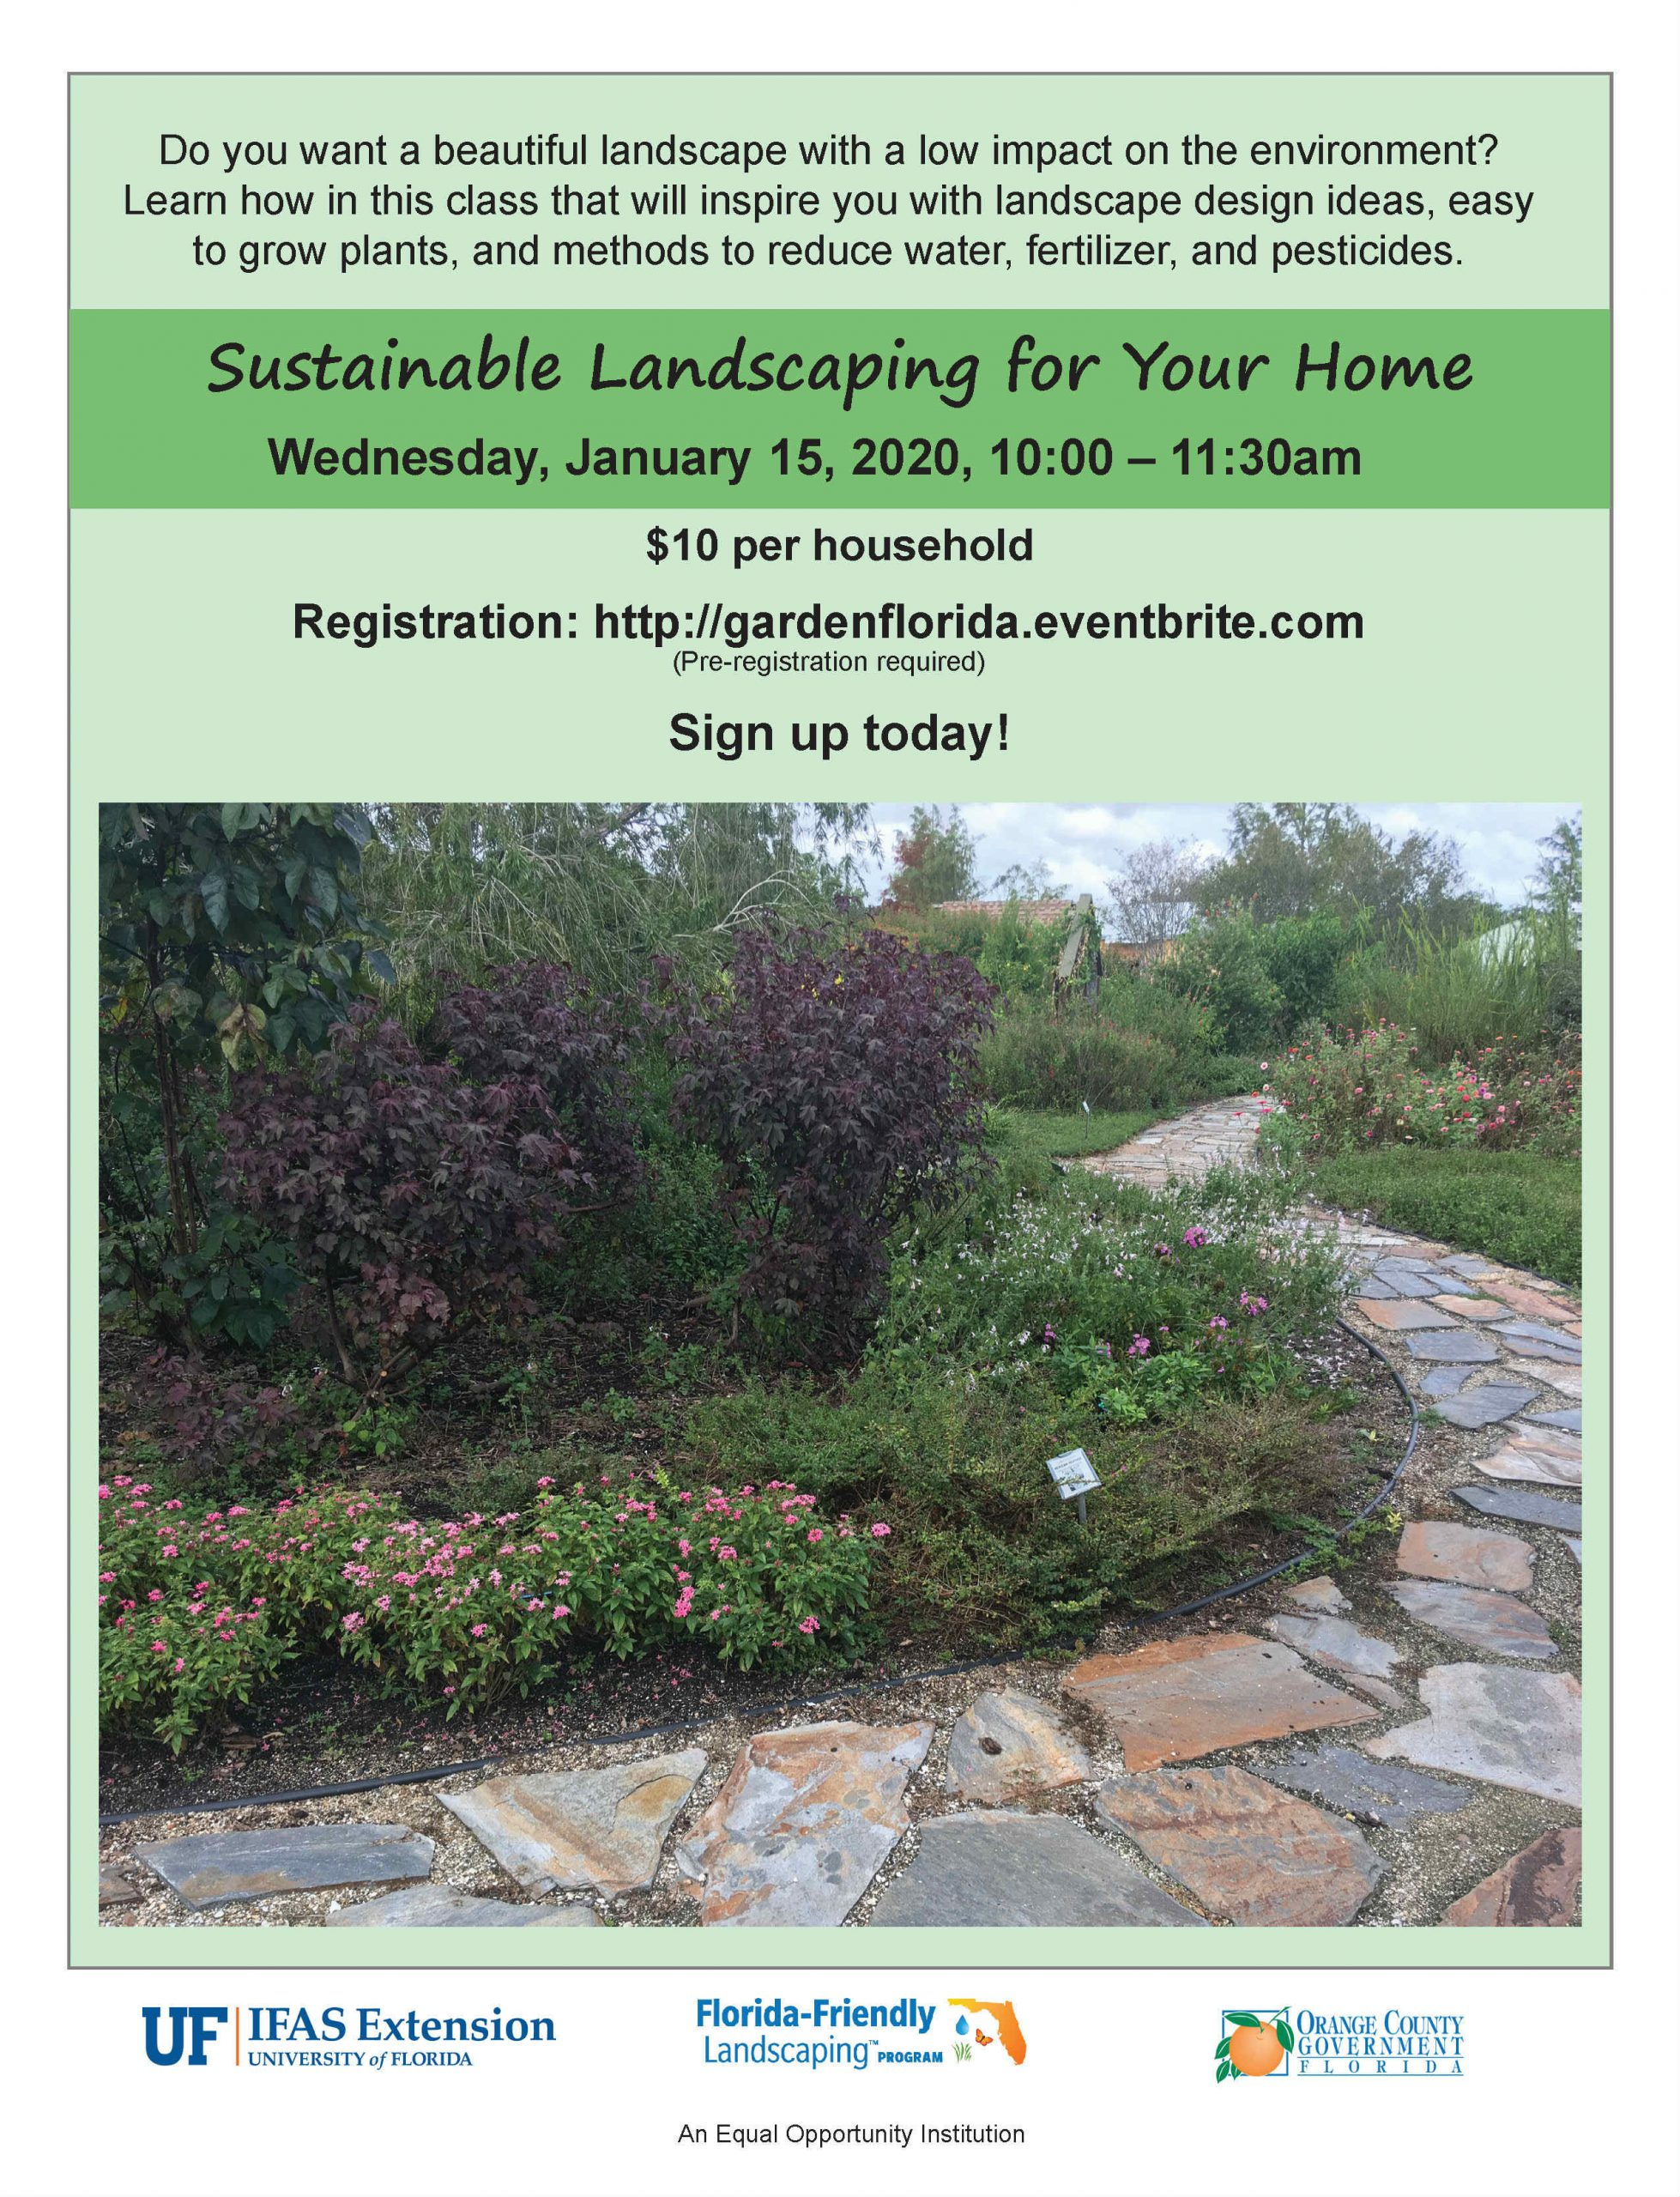 Sustainable Landscaping Class Uf Ifas Extension Orange County